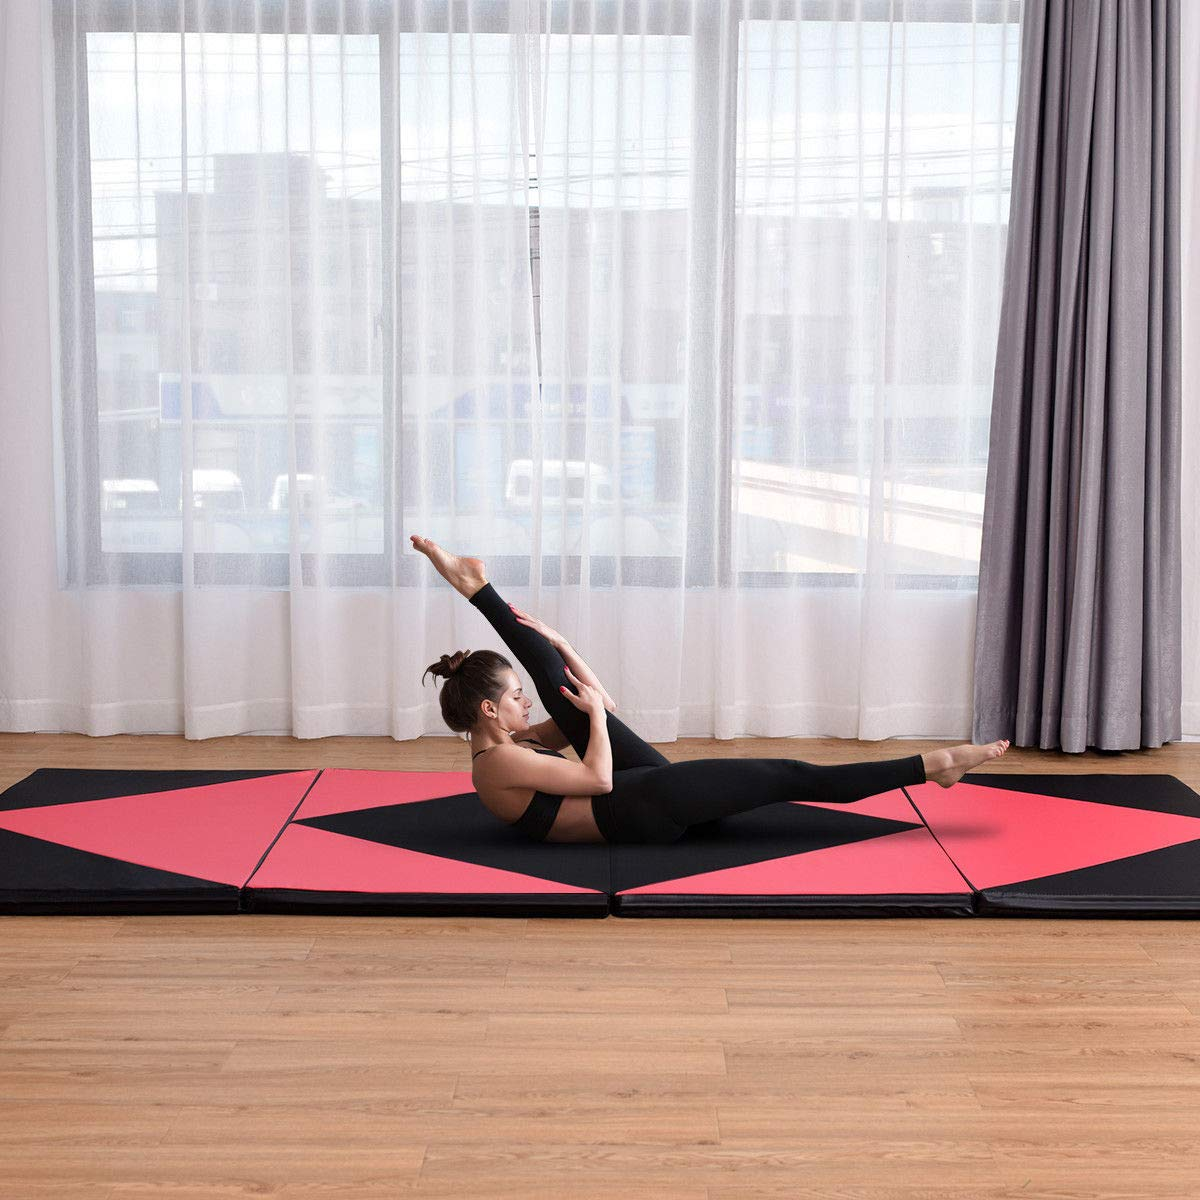 COSTWAY 4'X10'X2 Gymnastics Mat Folding Panel Thick Gym Fitness Exercise Pink/Black New by COSTWAY (Image #2)